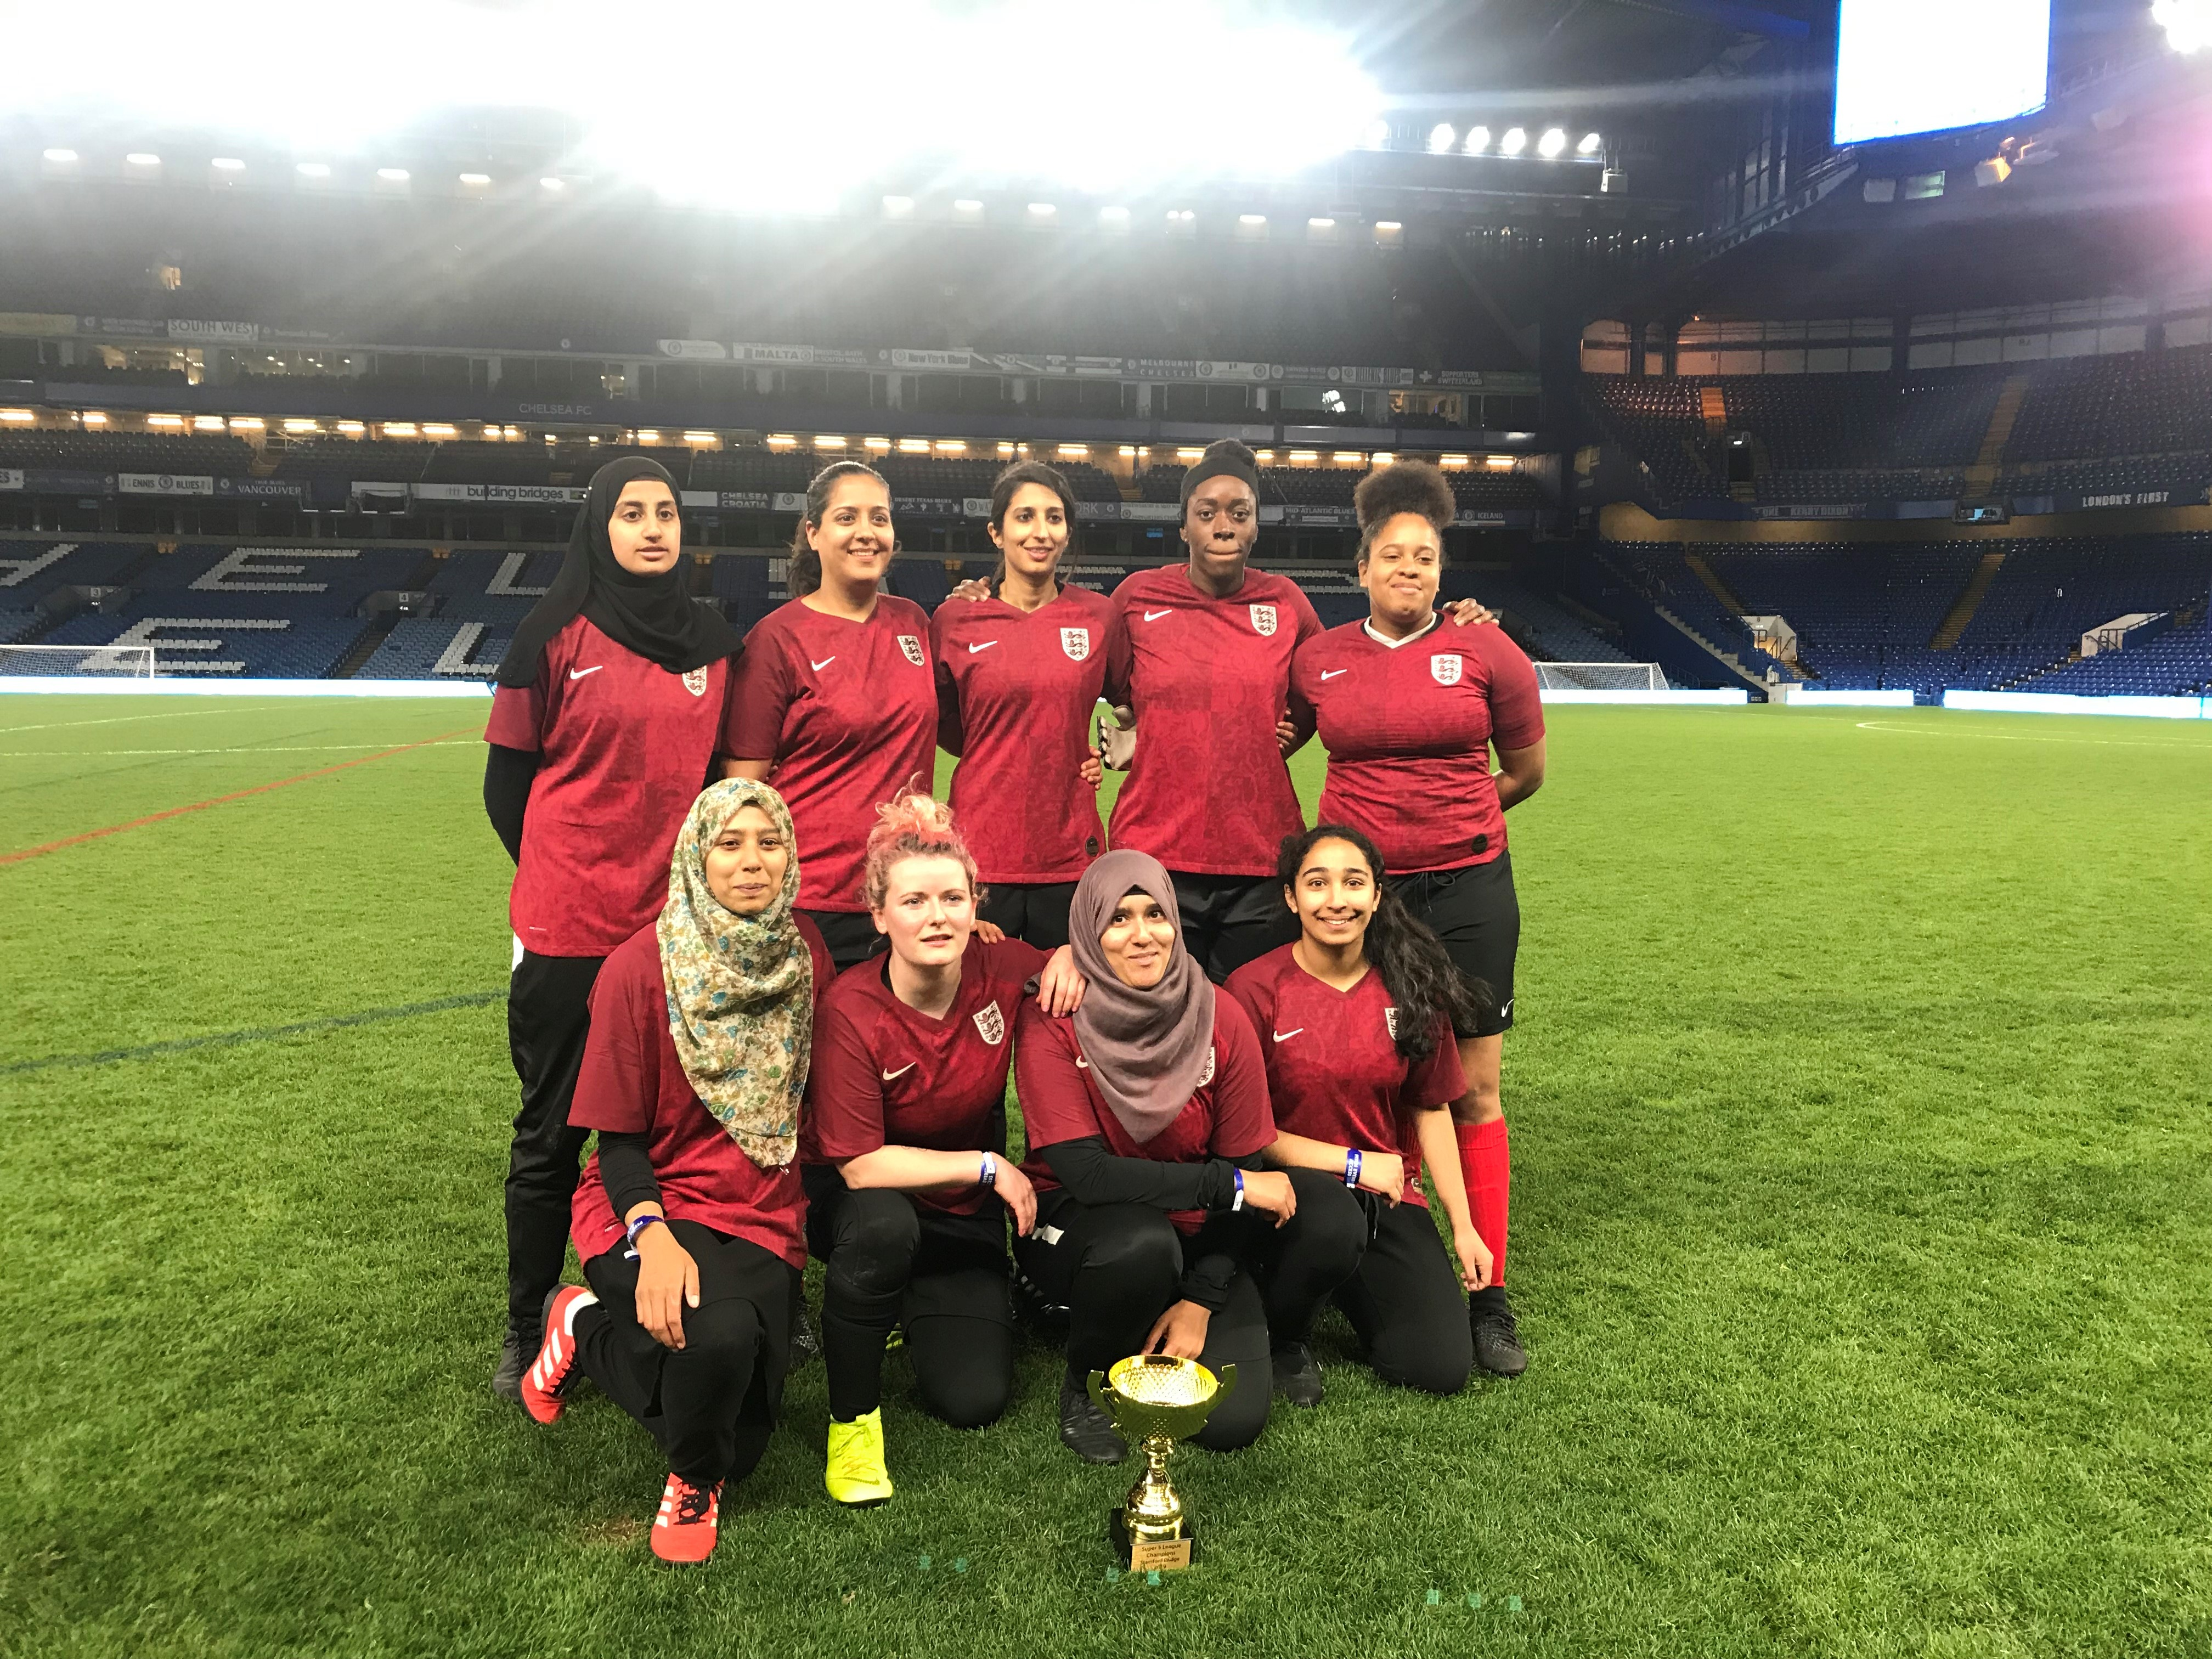 The MSA & Frenford FC team were winners at a five-a-side event at Stamford Bridge